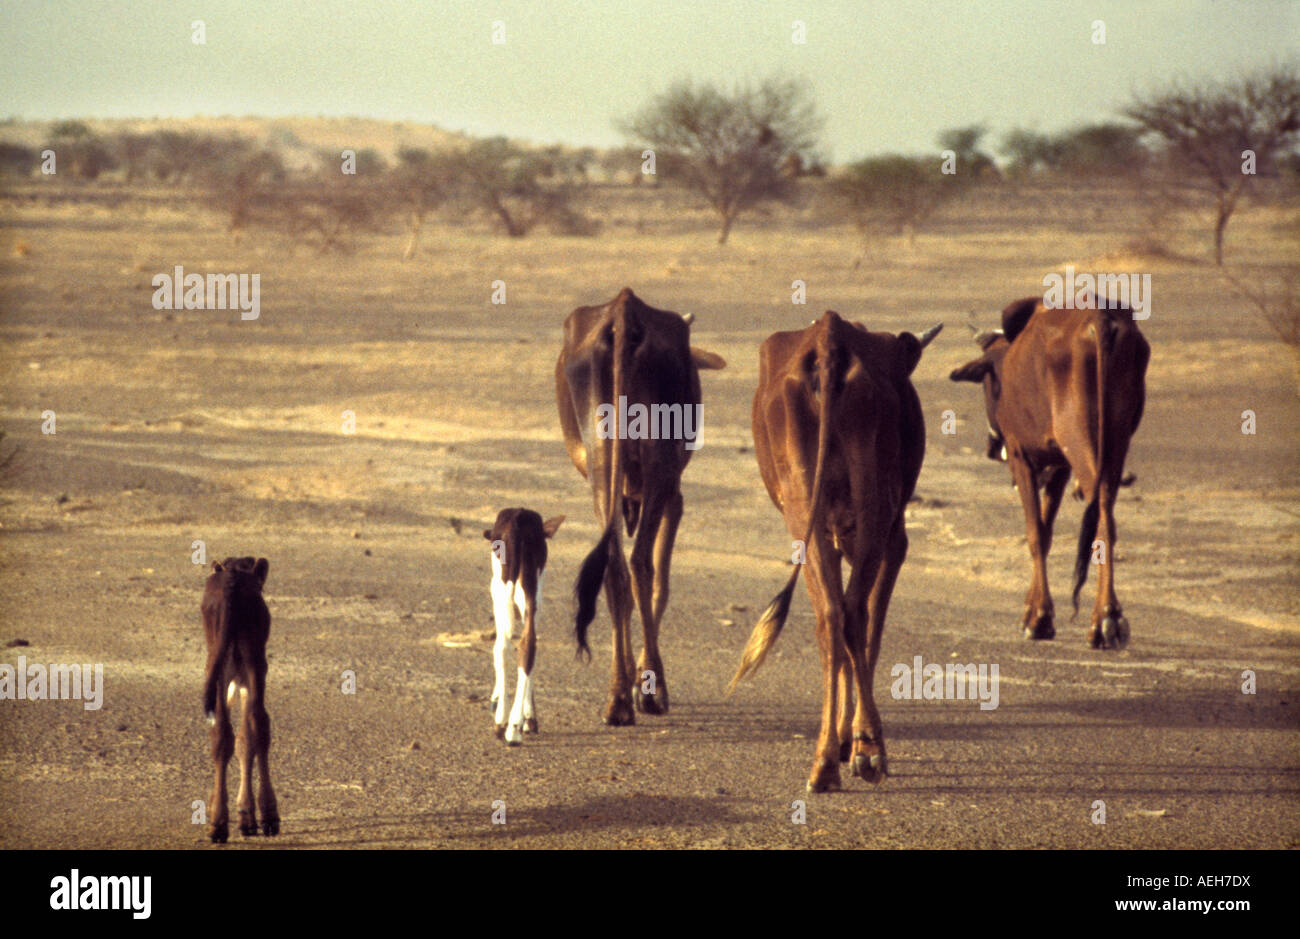 Mali Gao Cattle in Sahel, Cows during Drought of 1984 and 1985 - Stock Image